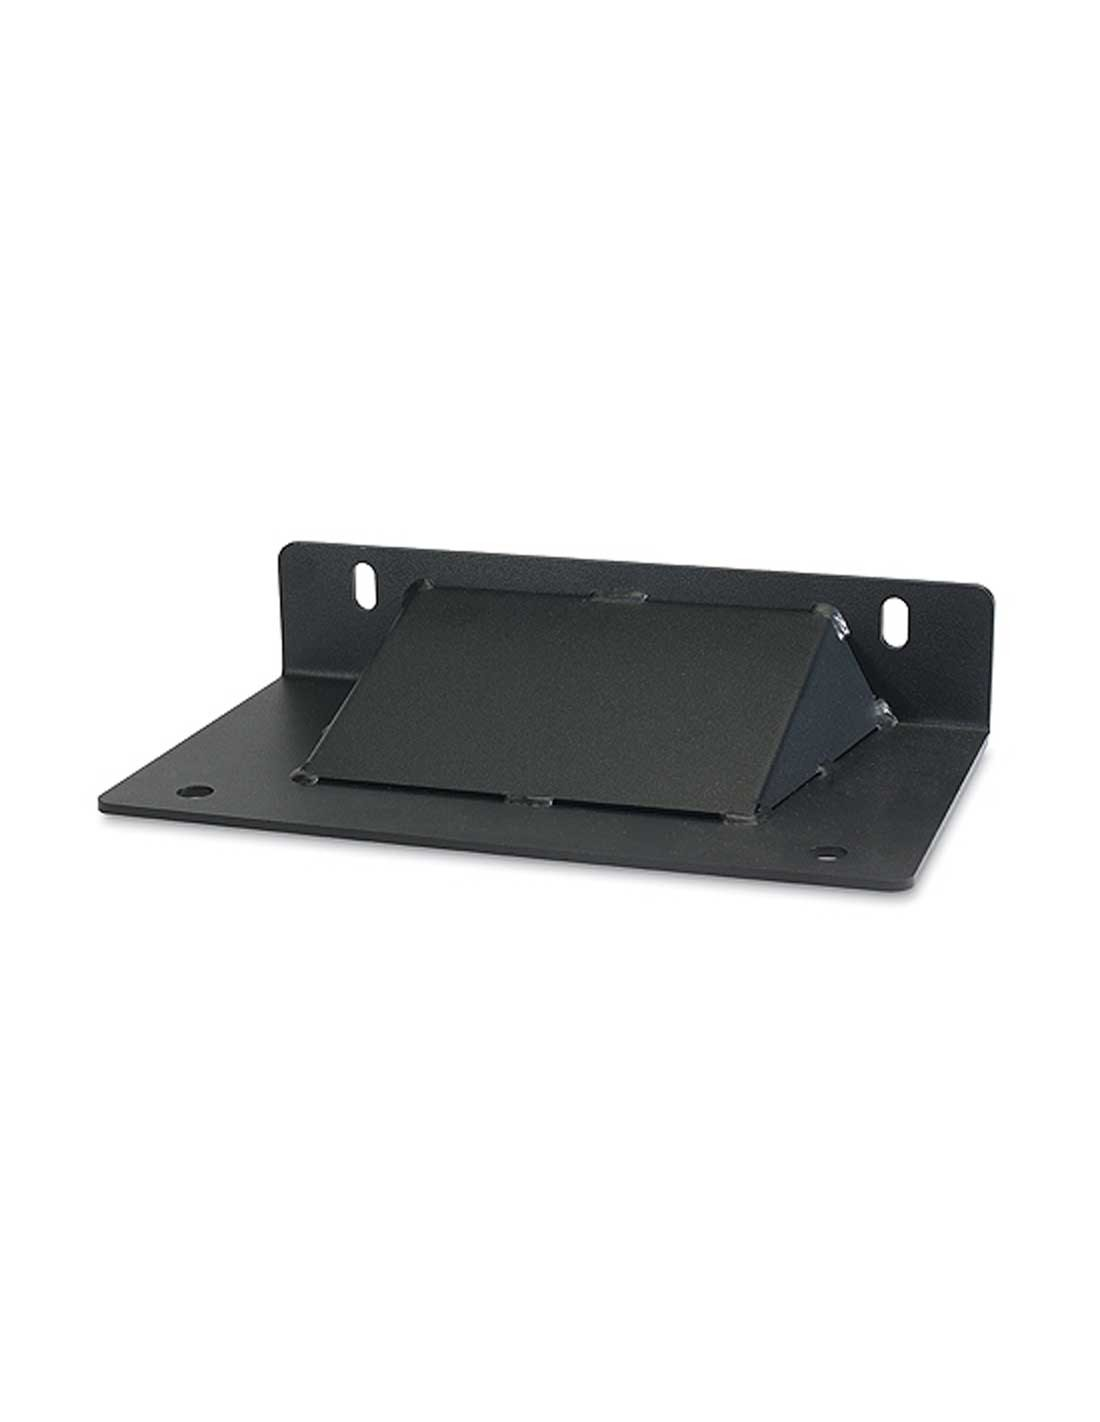 Rack Integration: APC Stabilizer Plate AR7700